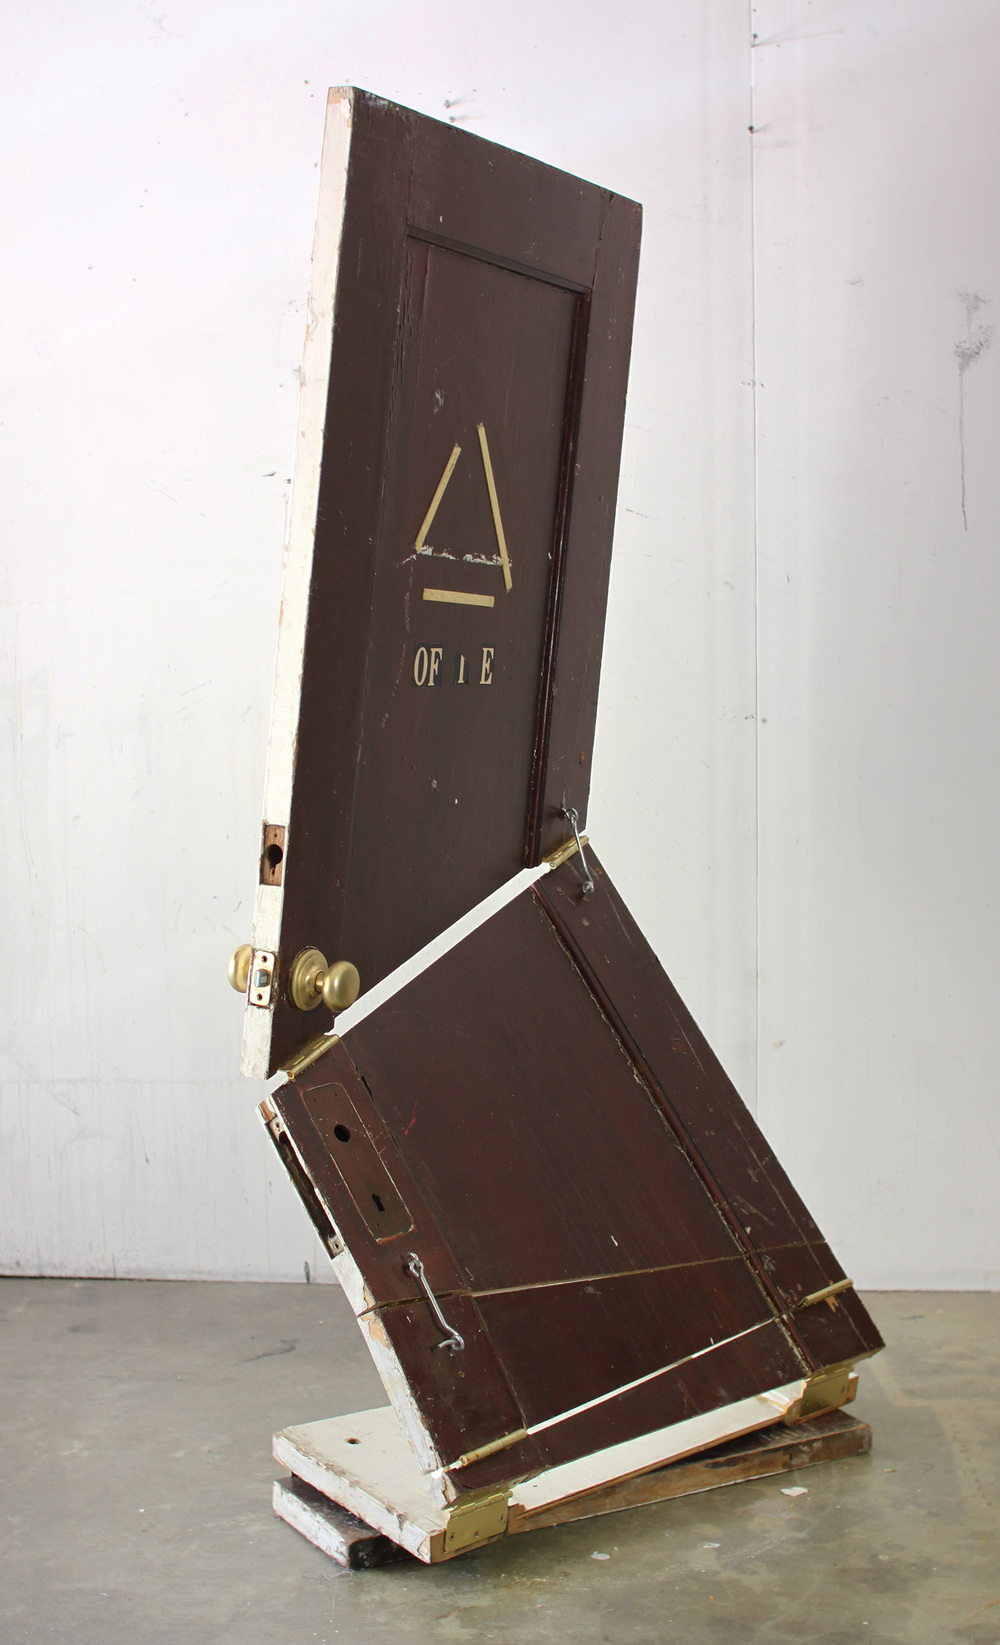 """Joshua Callaghan  Door #2  2012-14 door, hardware 60 X 50 X 42 Inches Courtesy of the Artist         Normal   0           false   false   false     EN-US   X-NONE   X-NONE                                                                                                                                                                                                                                                                                                                                                                                      /* Style Definitions */  table.MsoNormalTable {mso-style-name:""""Table Normal""""; mso-tstyle-rowband-size:0; mso-tstyle-colband-size:0; mso-style-noshow:yes; mso-style-priority:99; mso-style-qformat:yes; mso-style-parent:""""""""; mso-padding-alt:0in 5.4pt 0in 5.4pt; mso-para-margin:0in; mso-para-margin-bottom:.0001pt; mso-pagination:widow-orphan; font-size:10.0pt; font-family:""""Cambria"""",""""serif""""; mso-fareast-font-family:""""MS Mincho""""; mso-bidi-font-family:""""Times New Roman"""";}"""